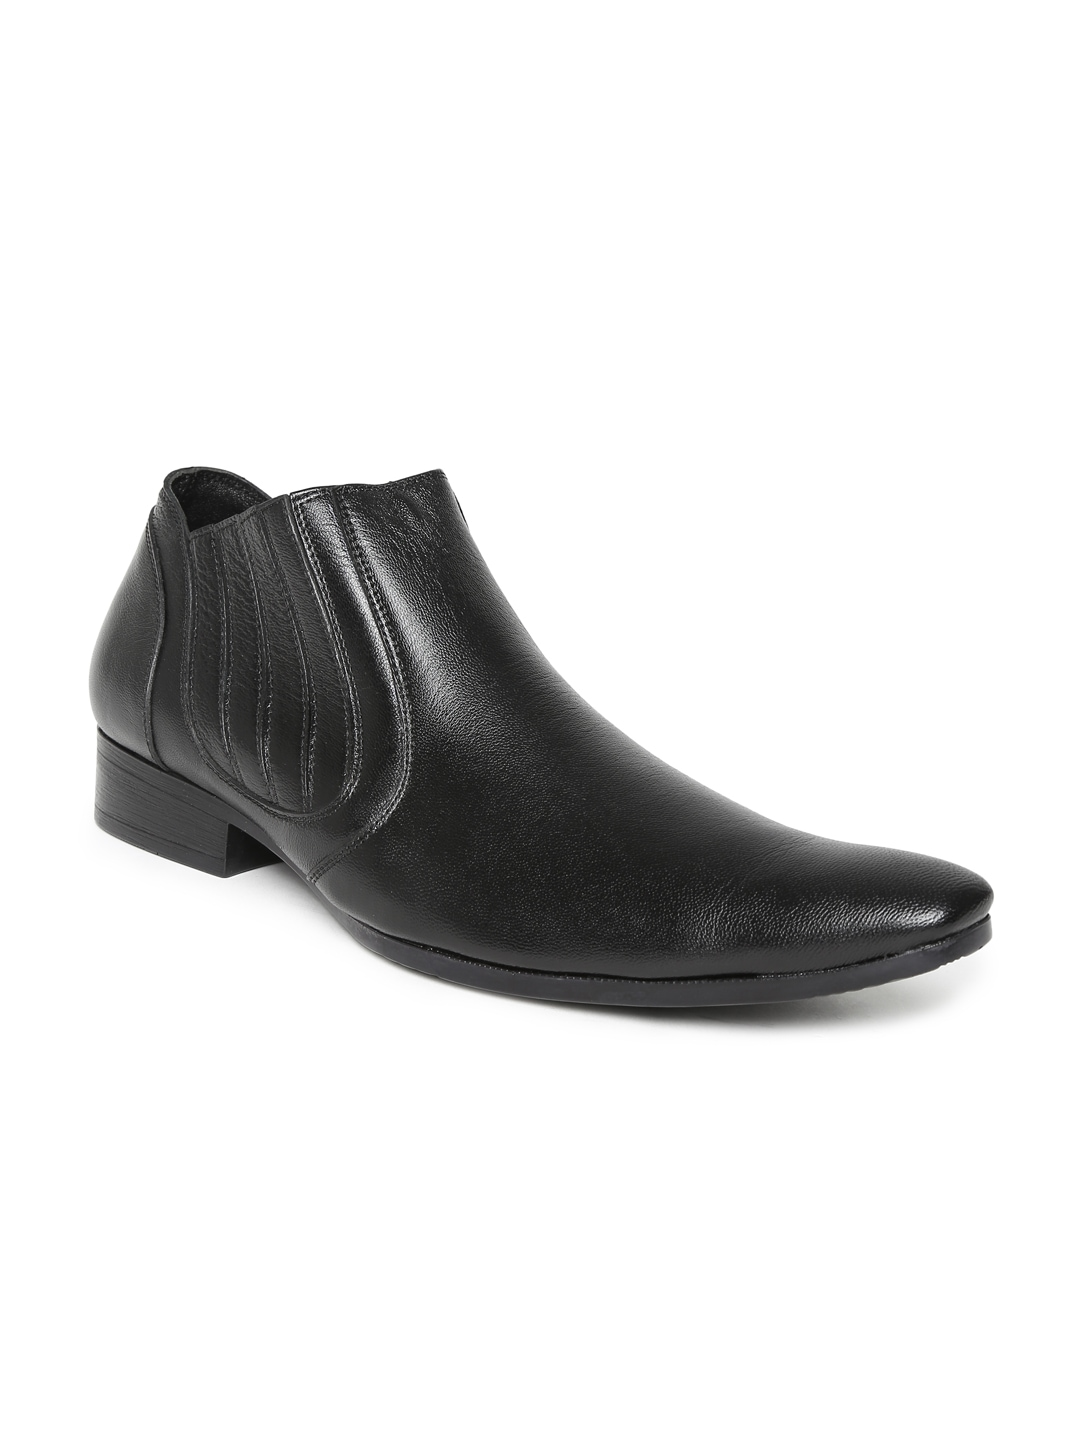 Allen Cooper Leather Shoes